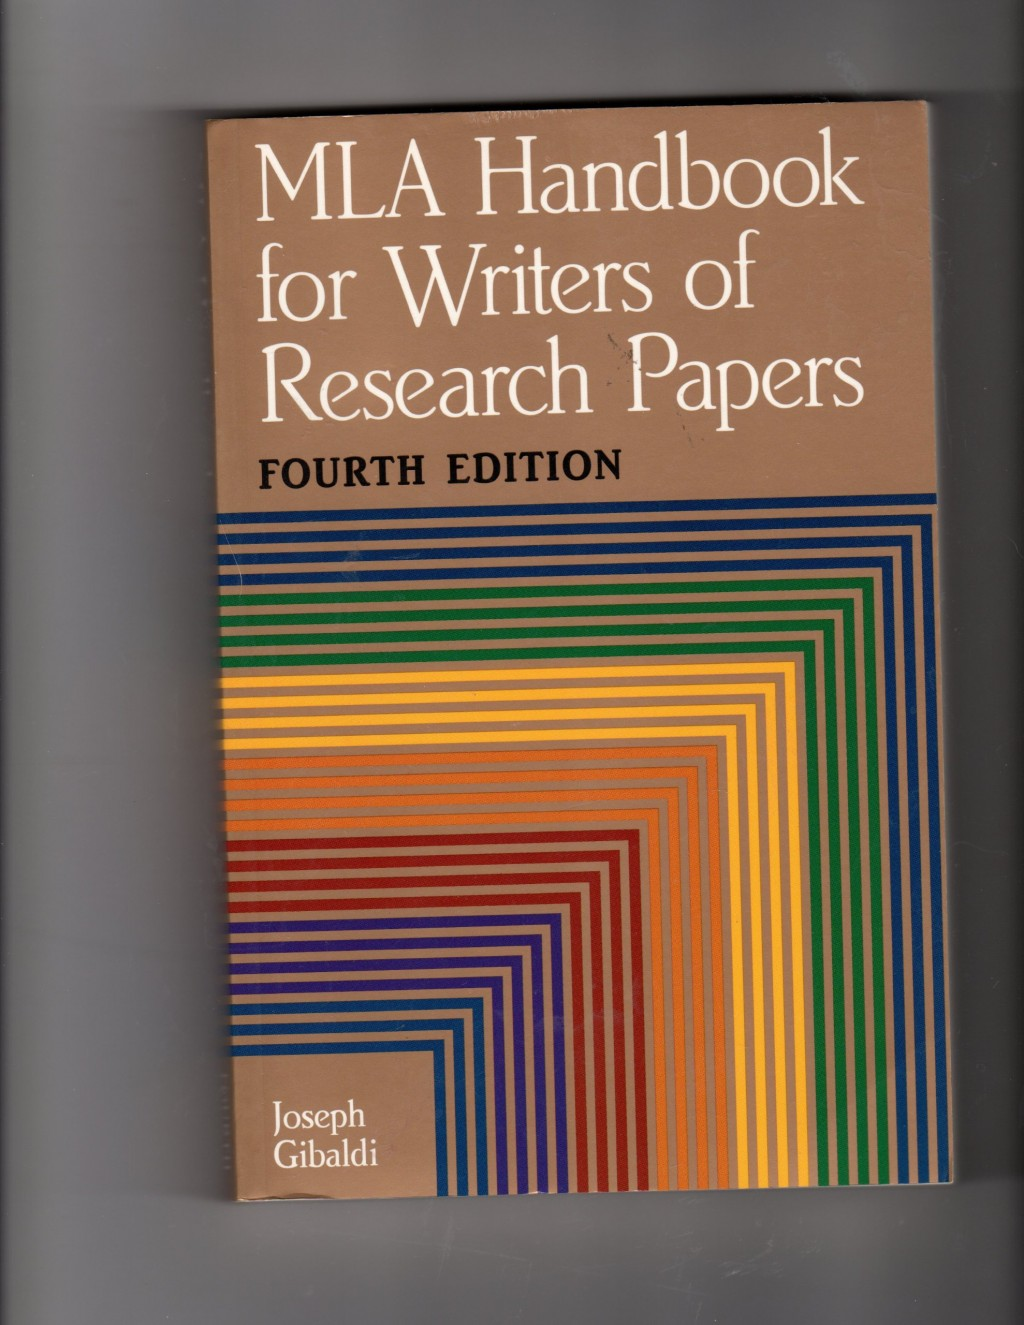 002 Research Paper 91or7esc2gl Mla Handbook For Writers Impressive Of Papers 7th Edition 8th Pdf Free Download Joseph Gibaldi 6th Large